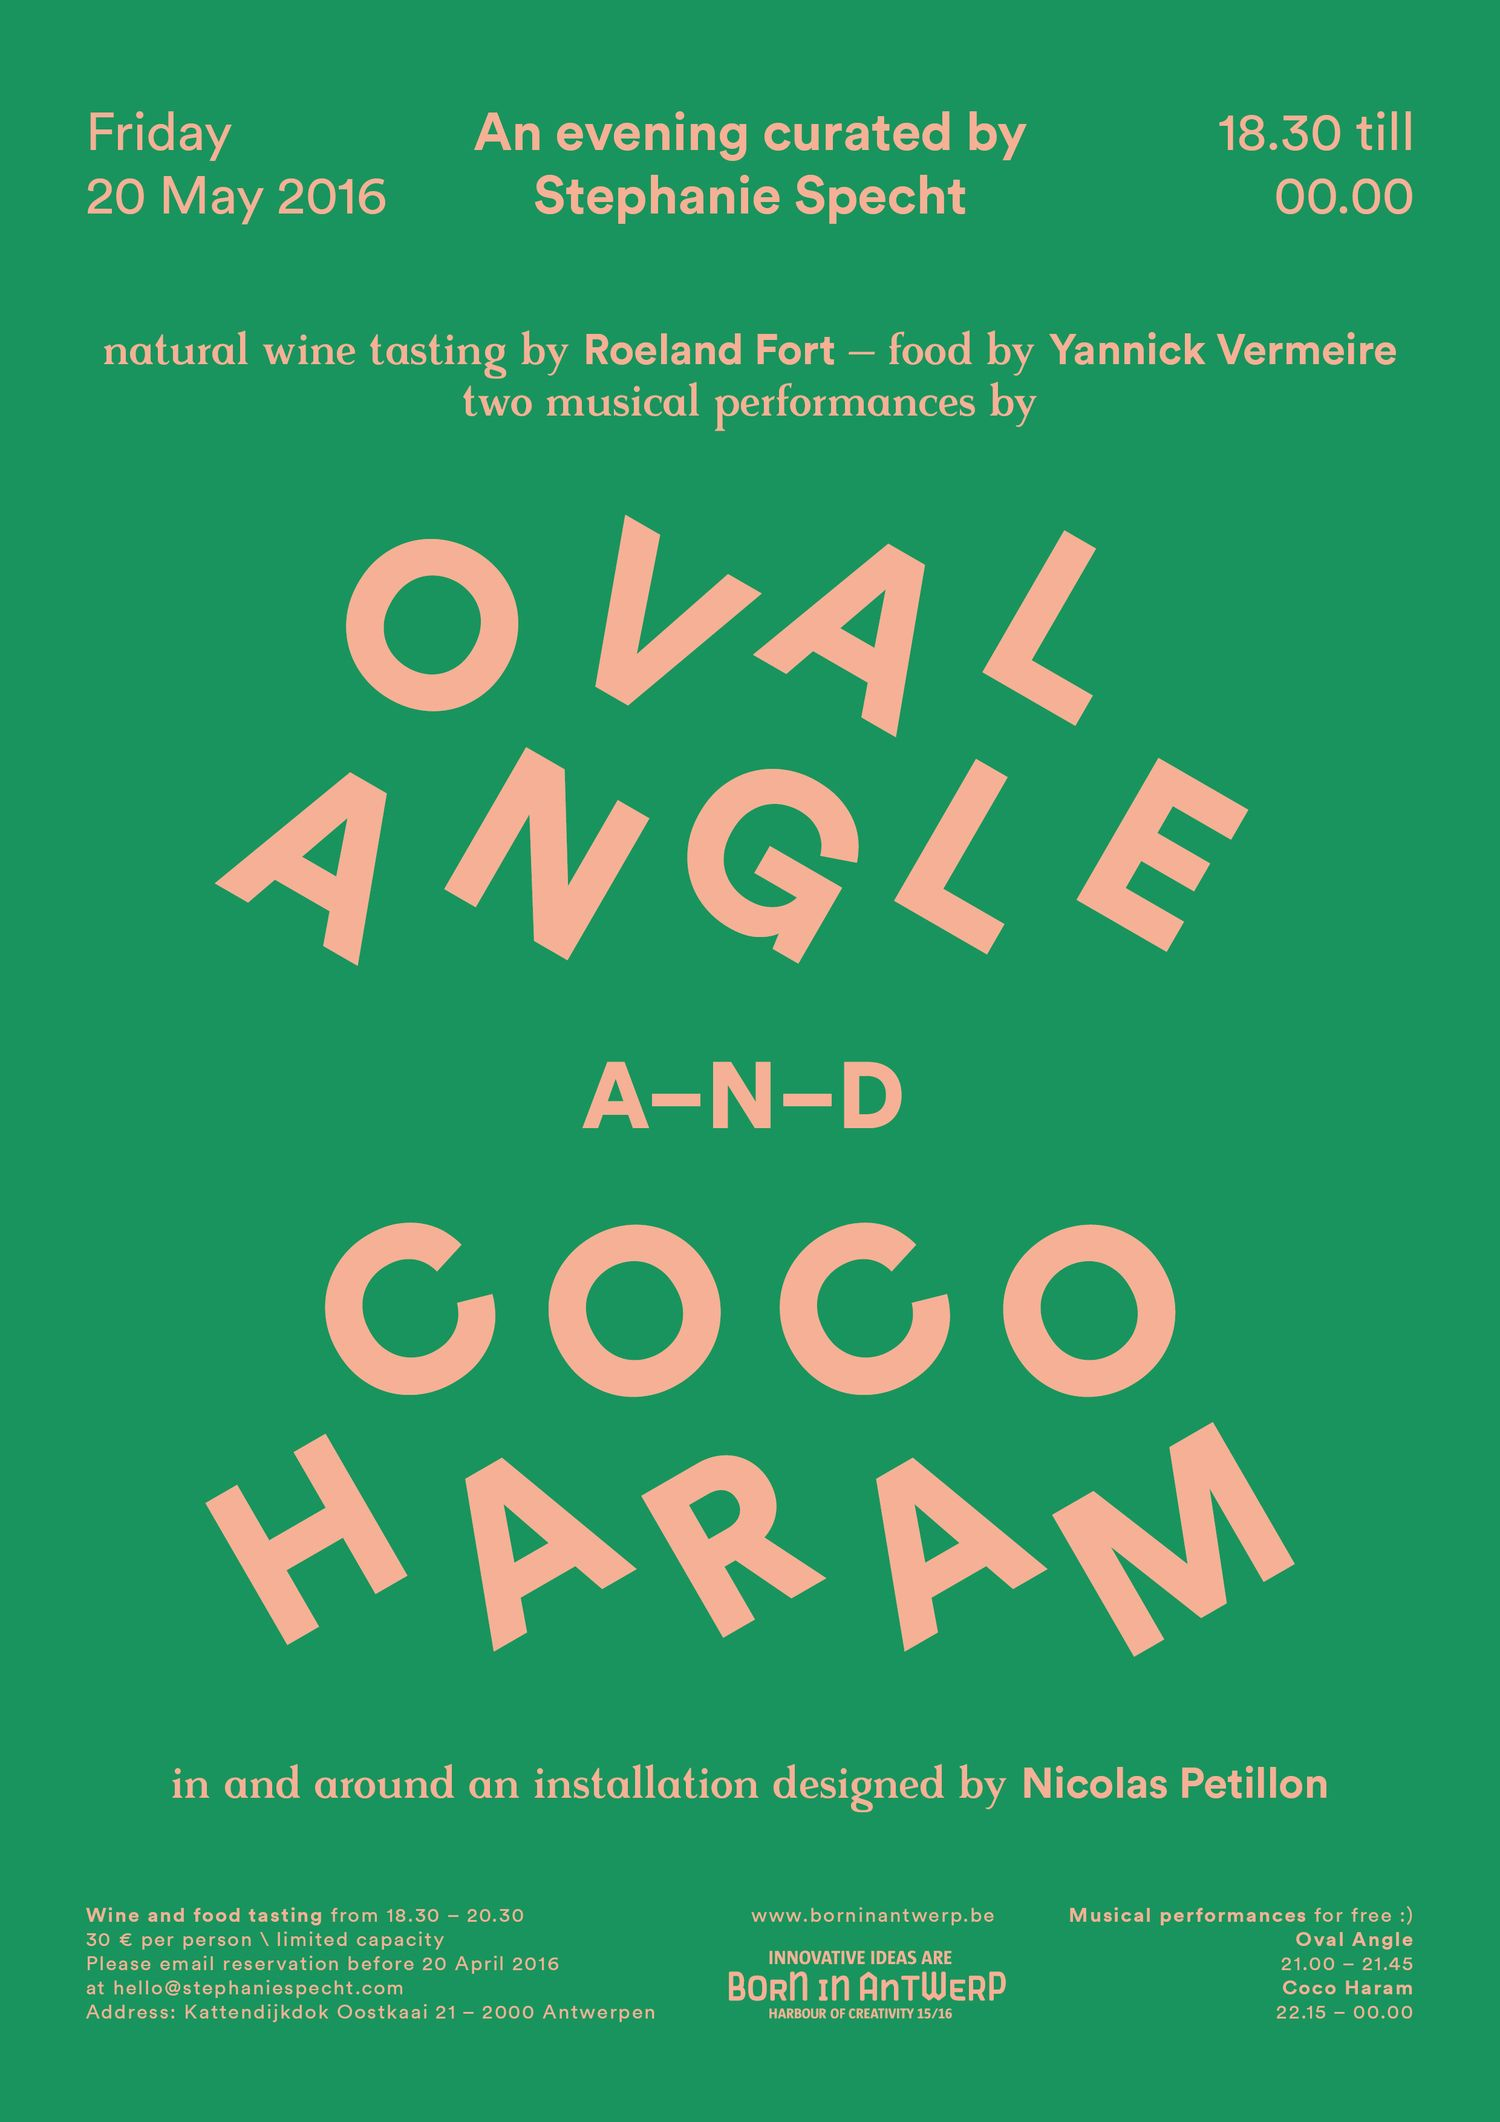 Oval Angle and Coco Haram poster | d e s i g n | Pinterest ... for Innovative Posters Design  110zmd